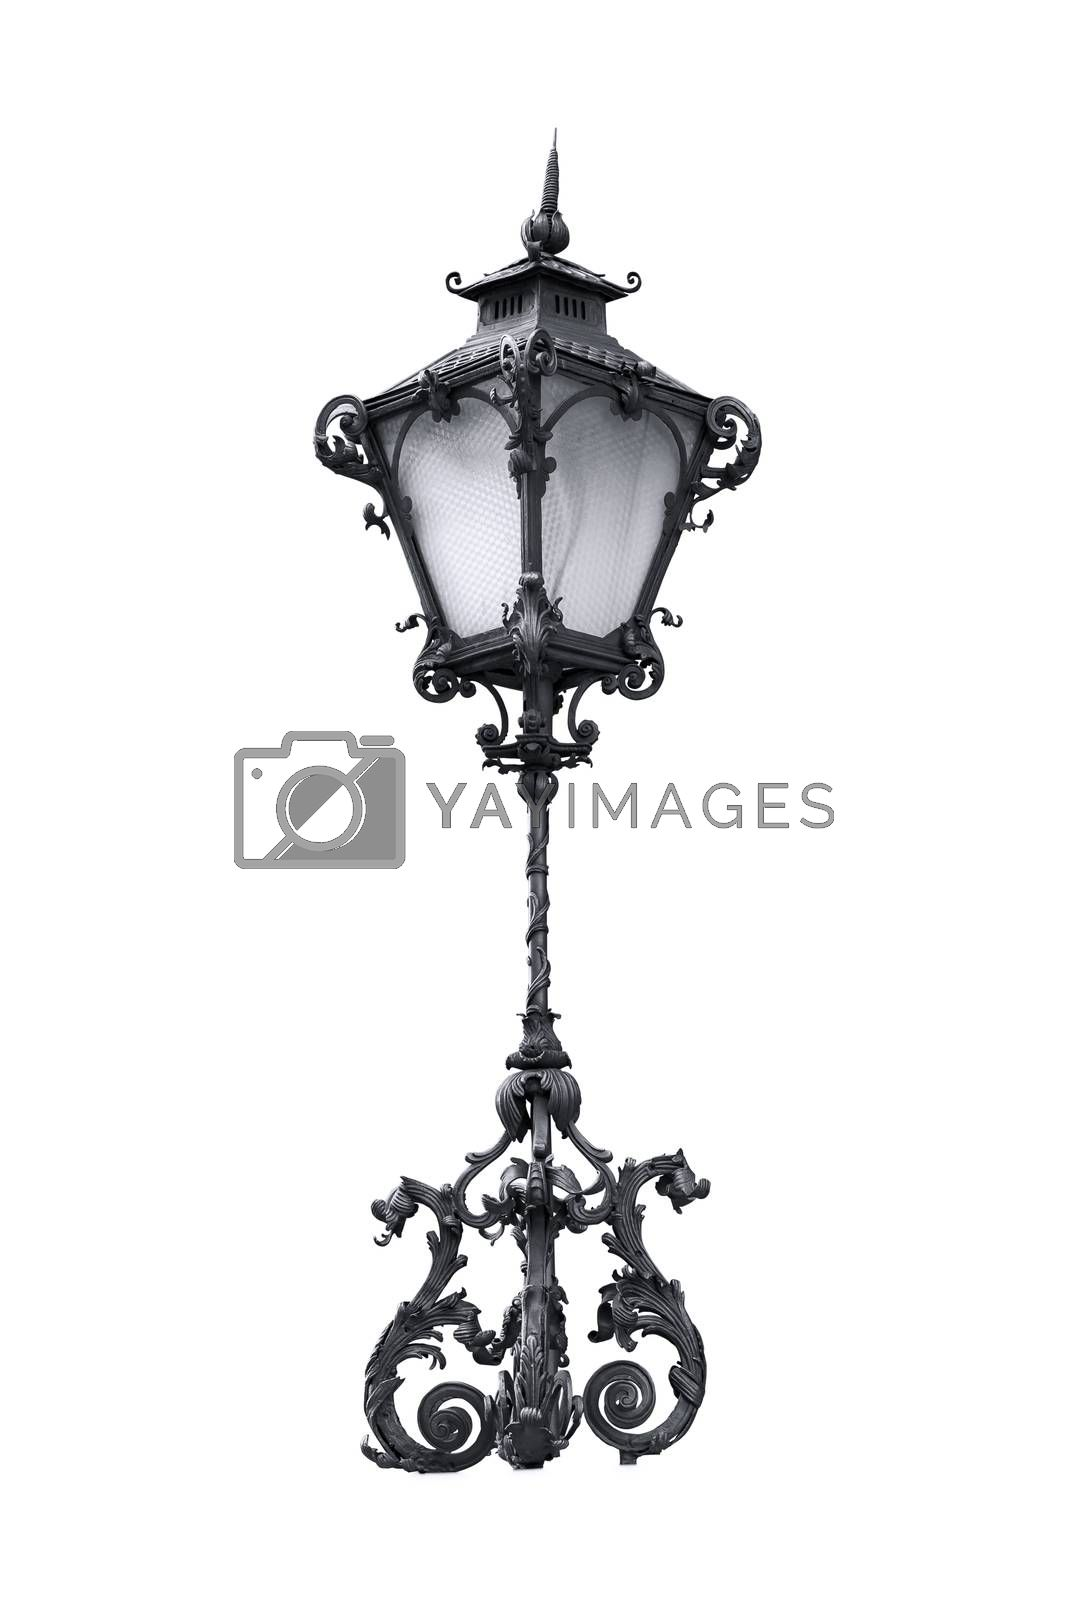 Decorative street lantern isolated on white background with clipping path